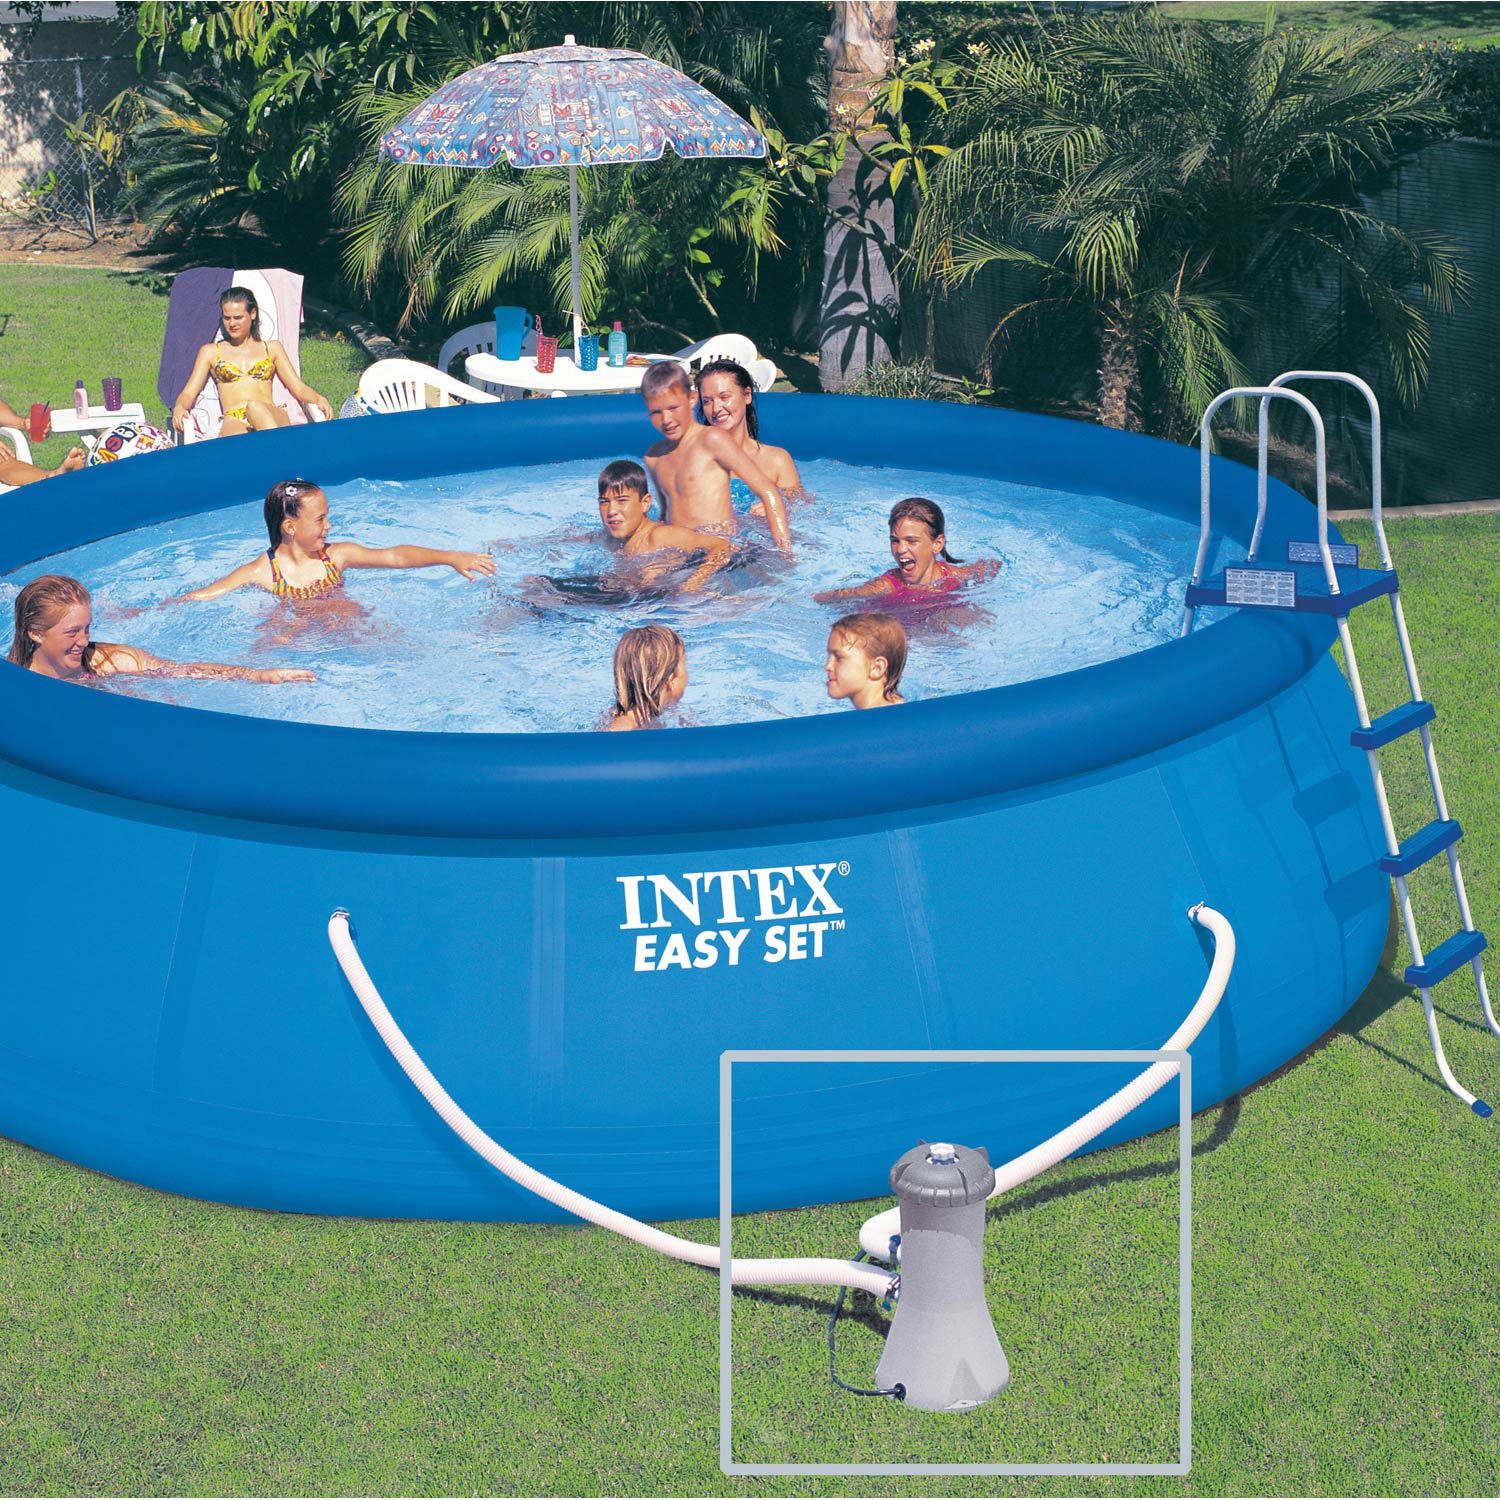 Piscine hors sol autoportante gonflable easy set intex for Video x piscine